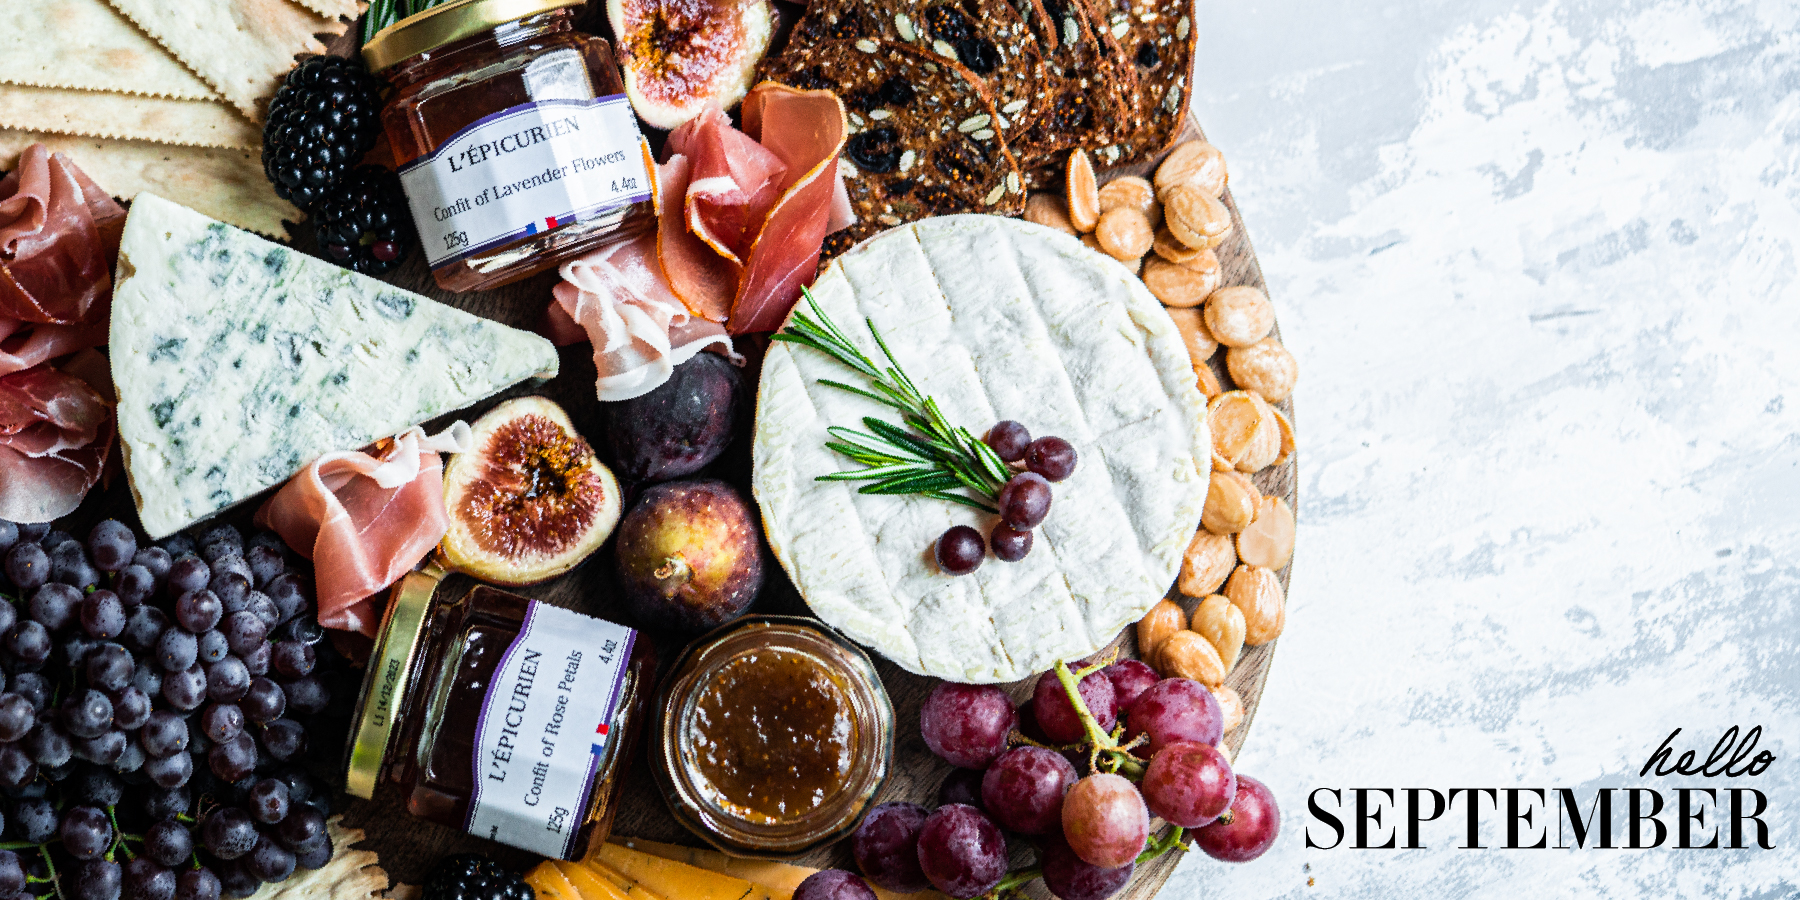 Cheese board with seasonal items like figs with l'epicurien confits for cheese